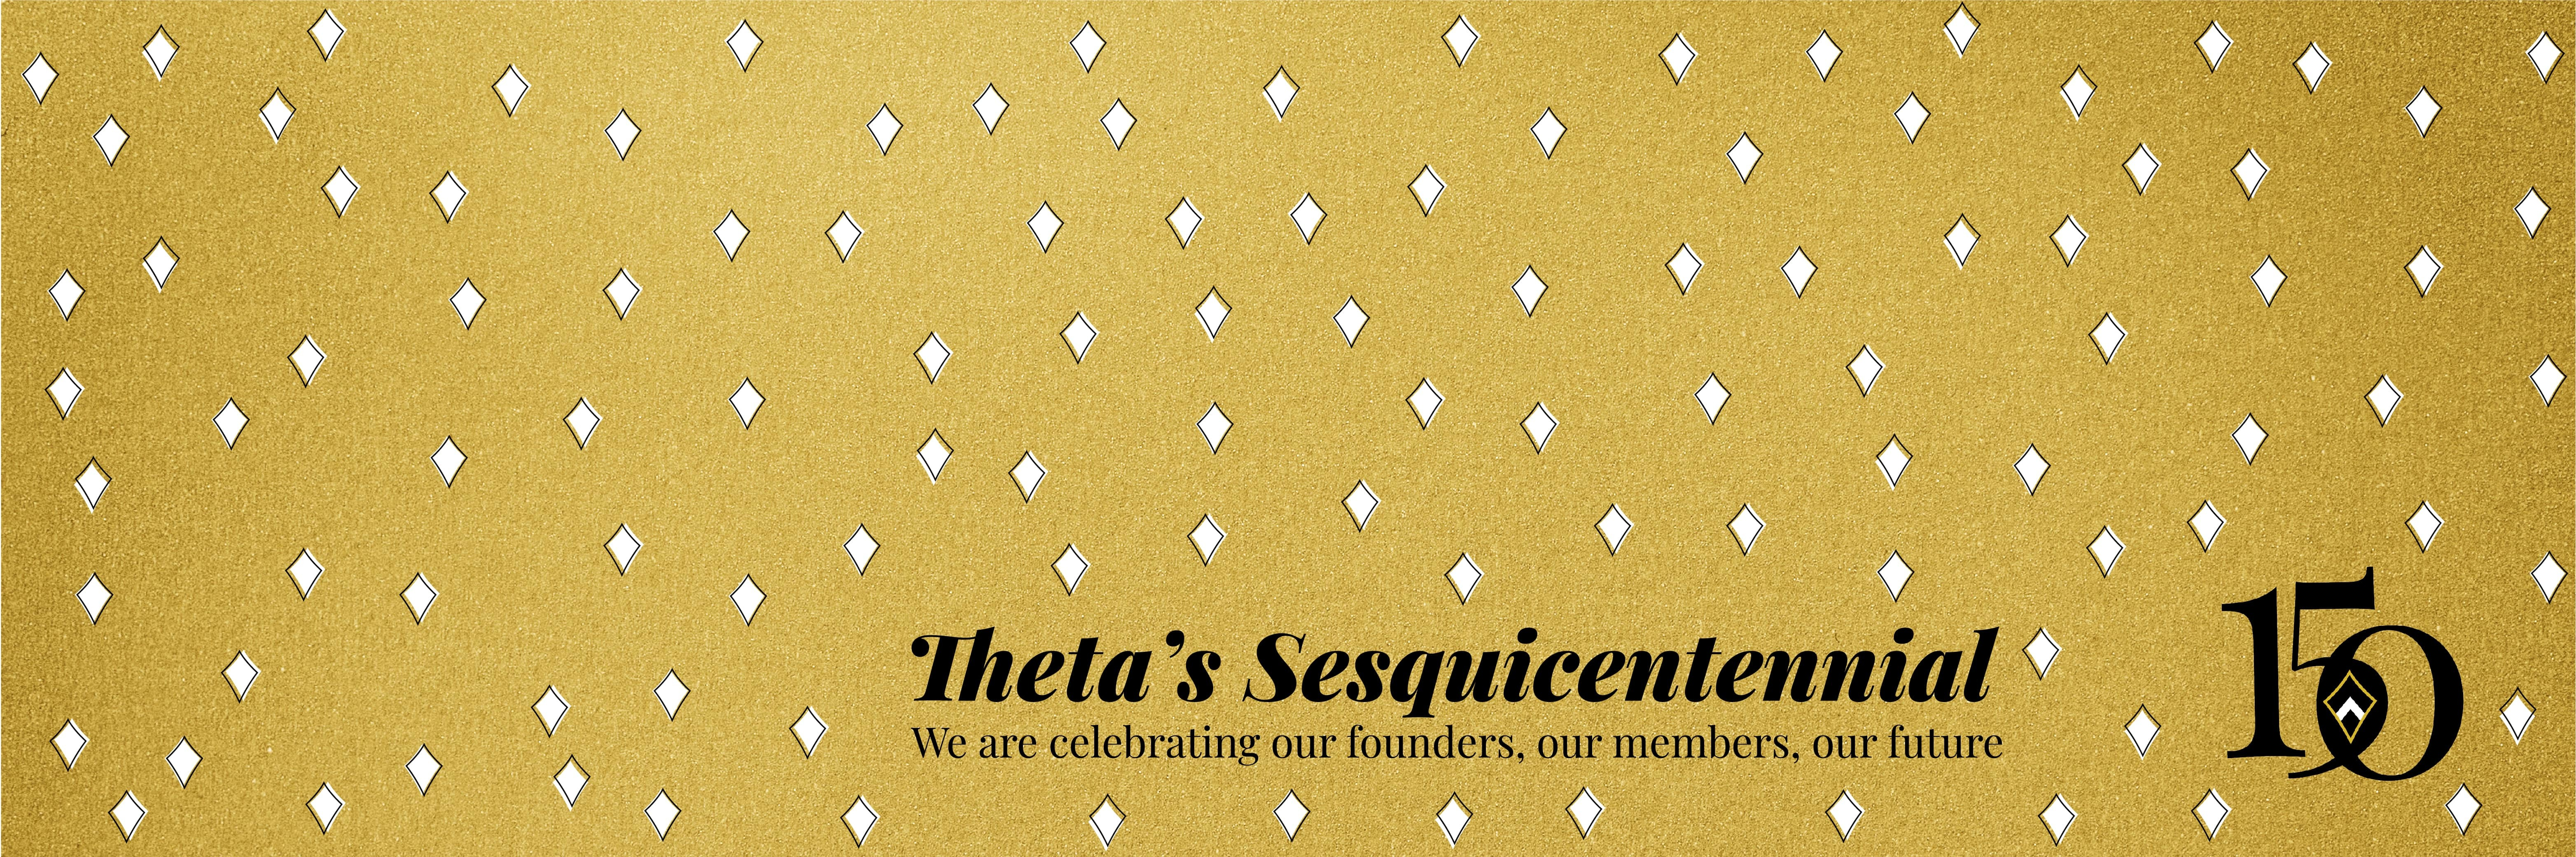 Theta Cover Photos Twitter Profile Cover 9